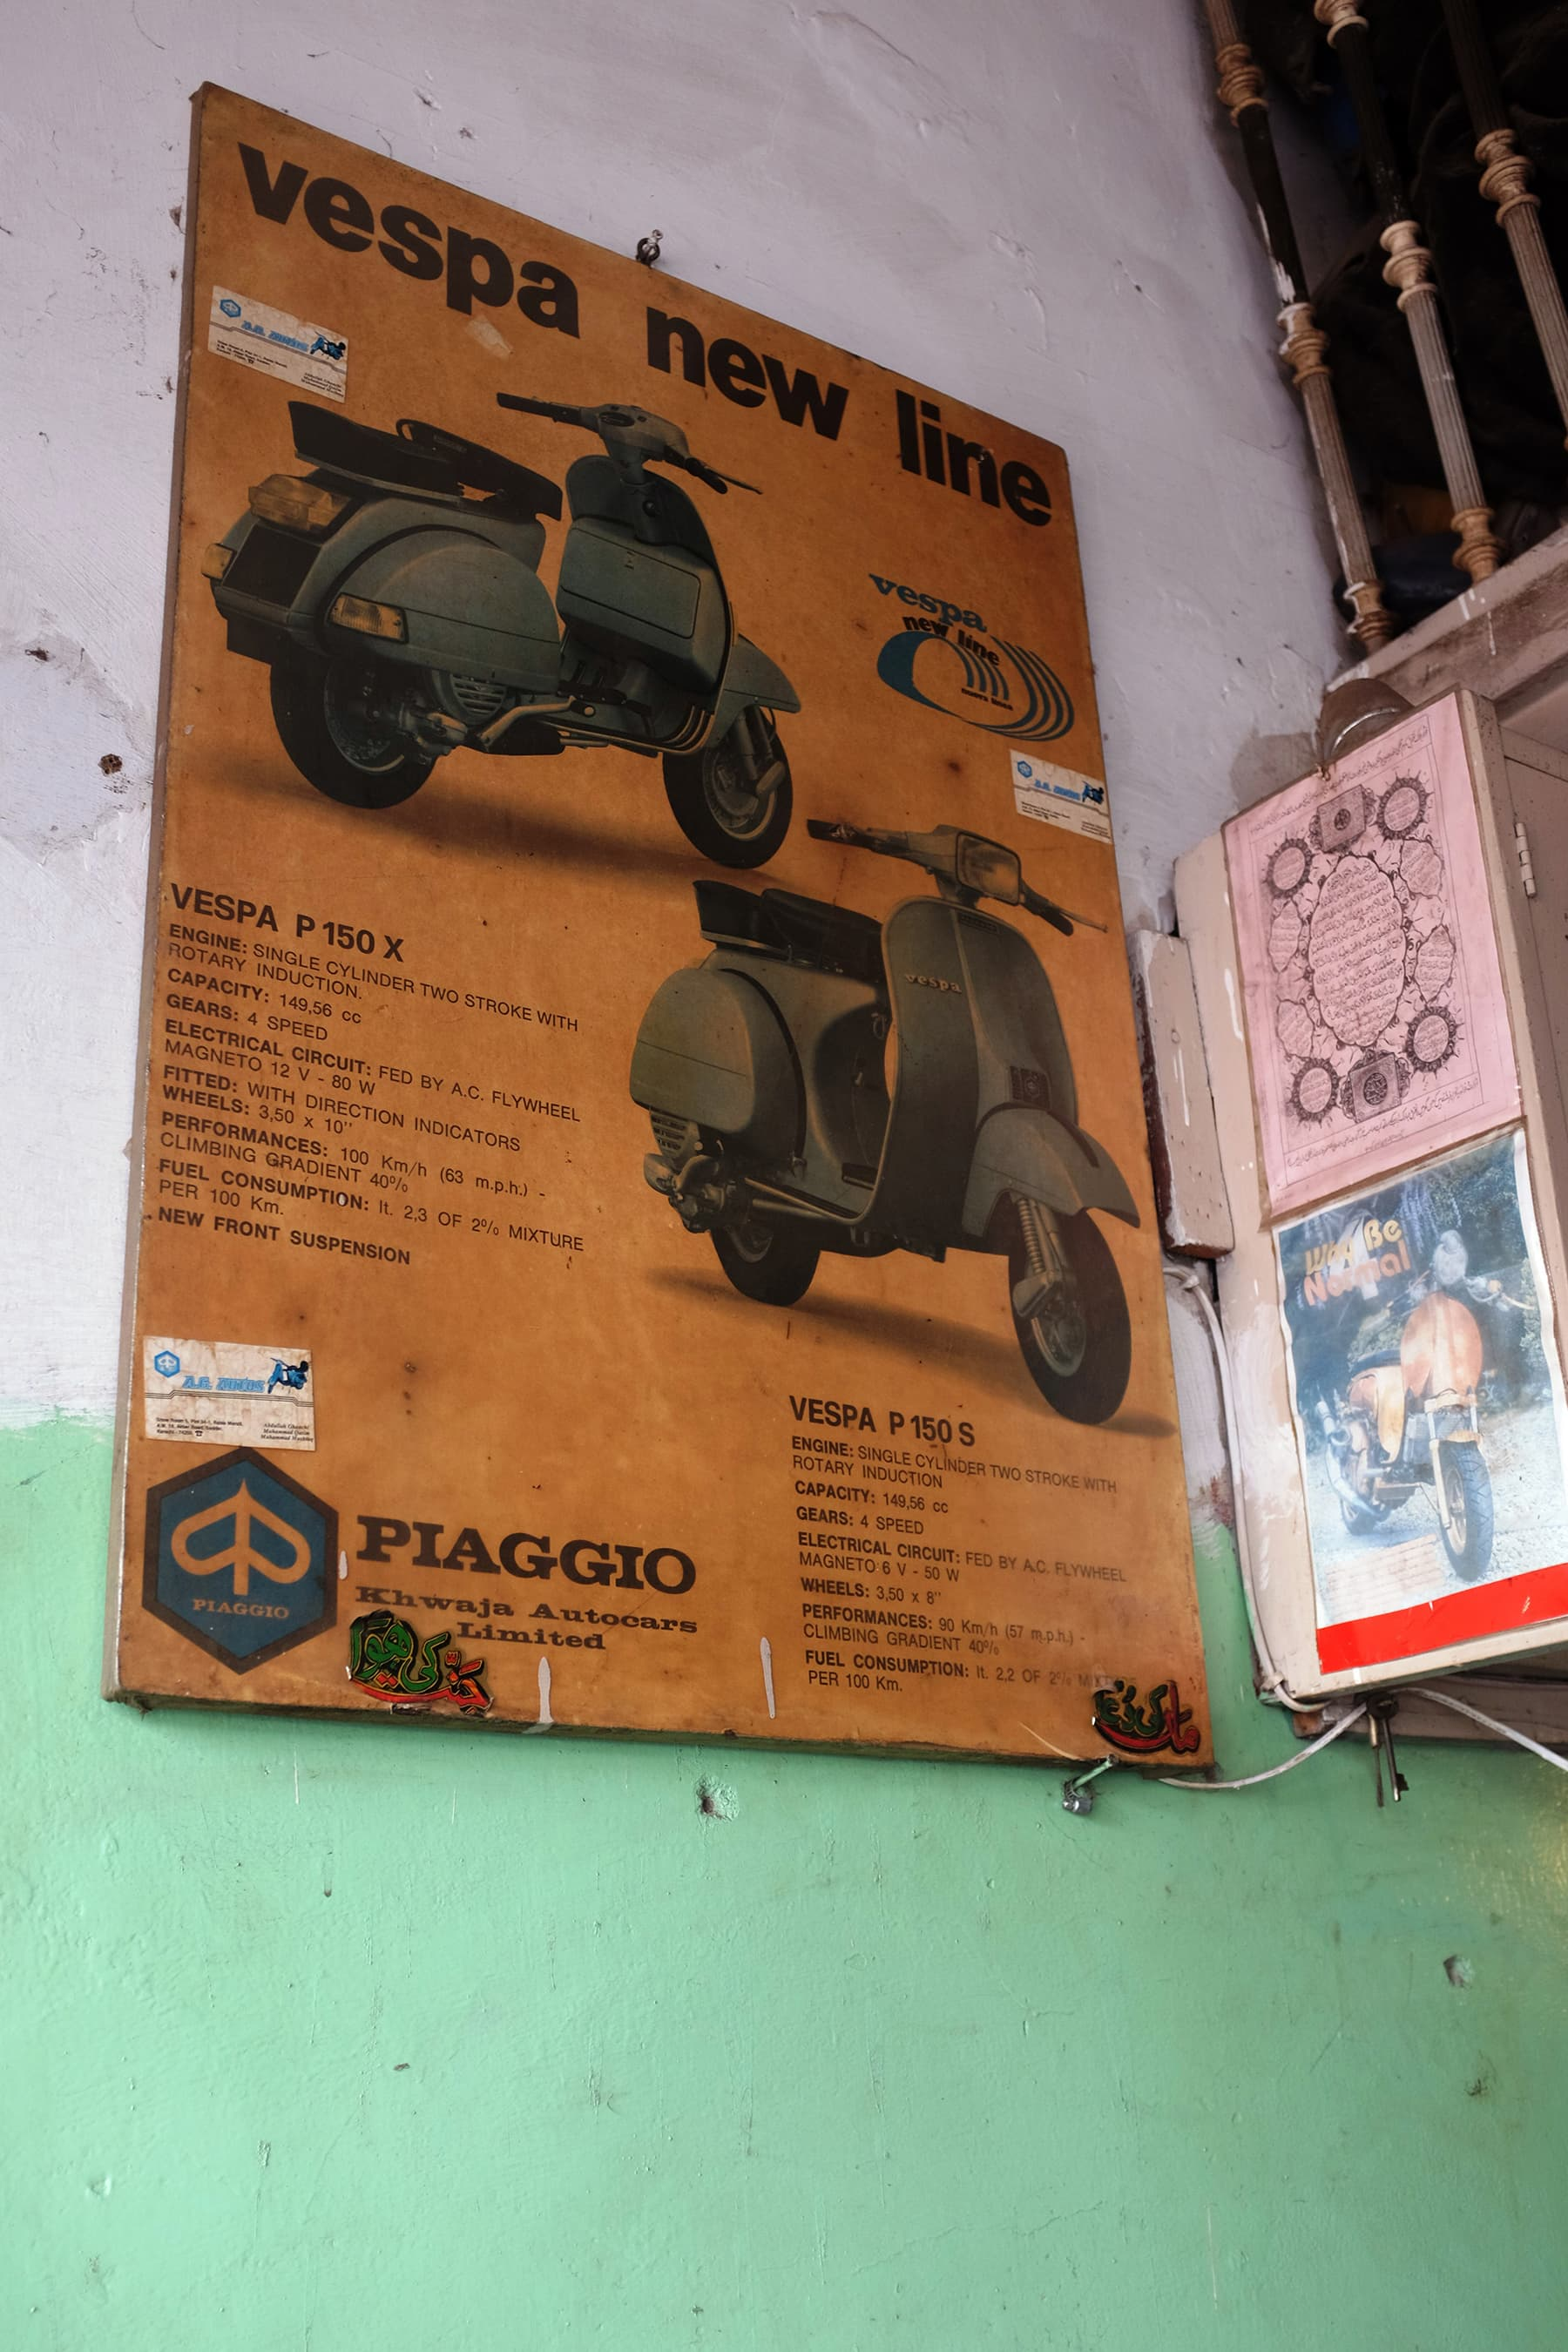 An old Piaggio poster.